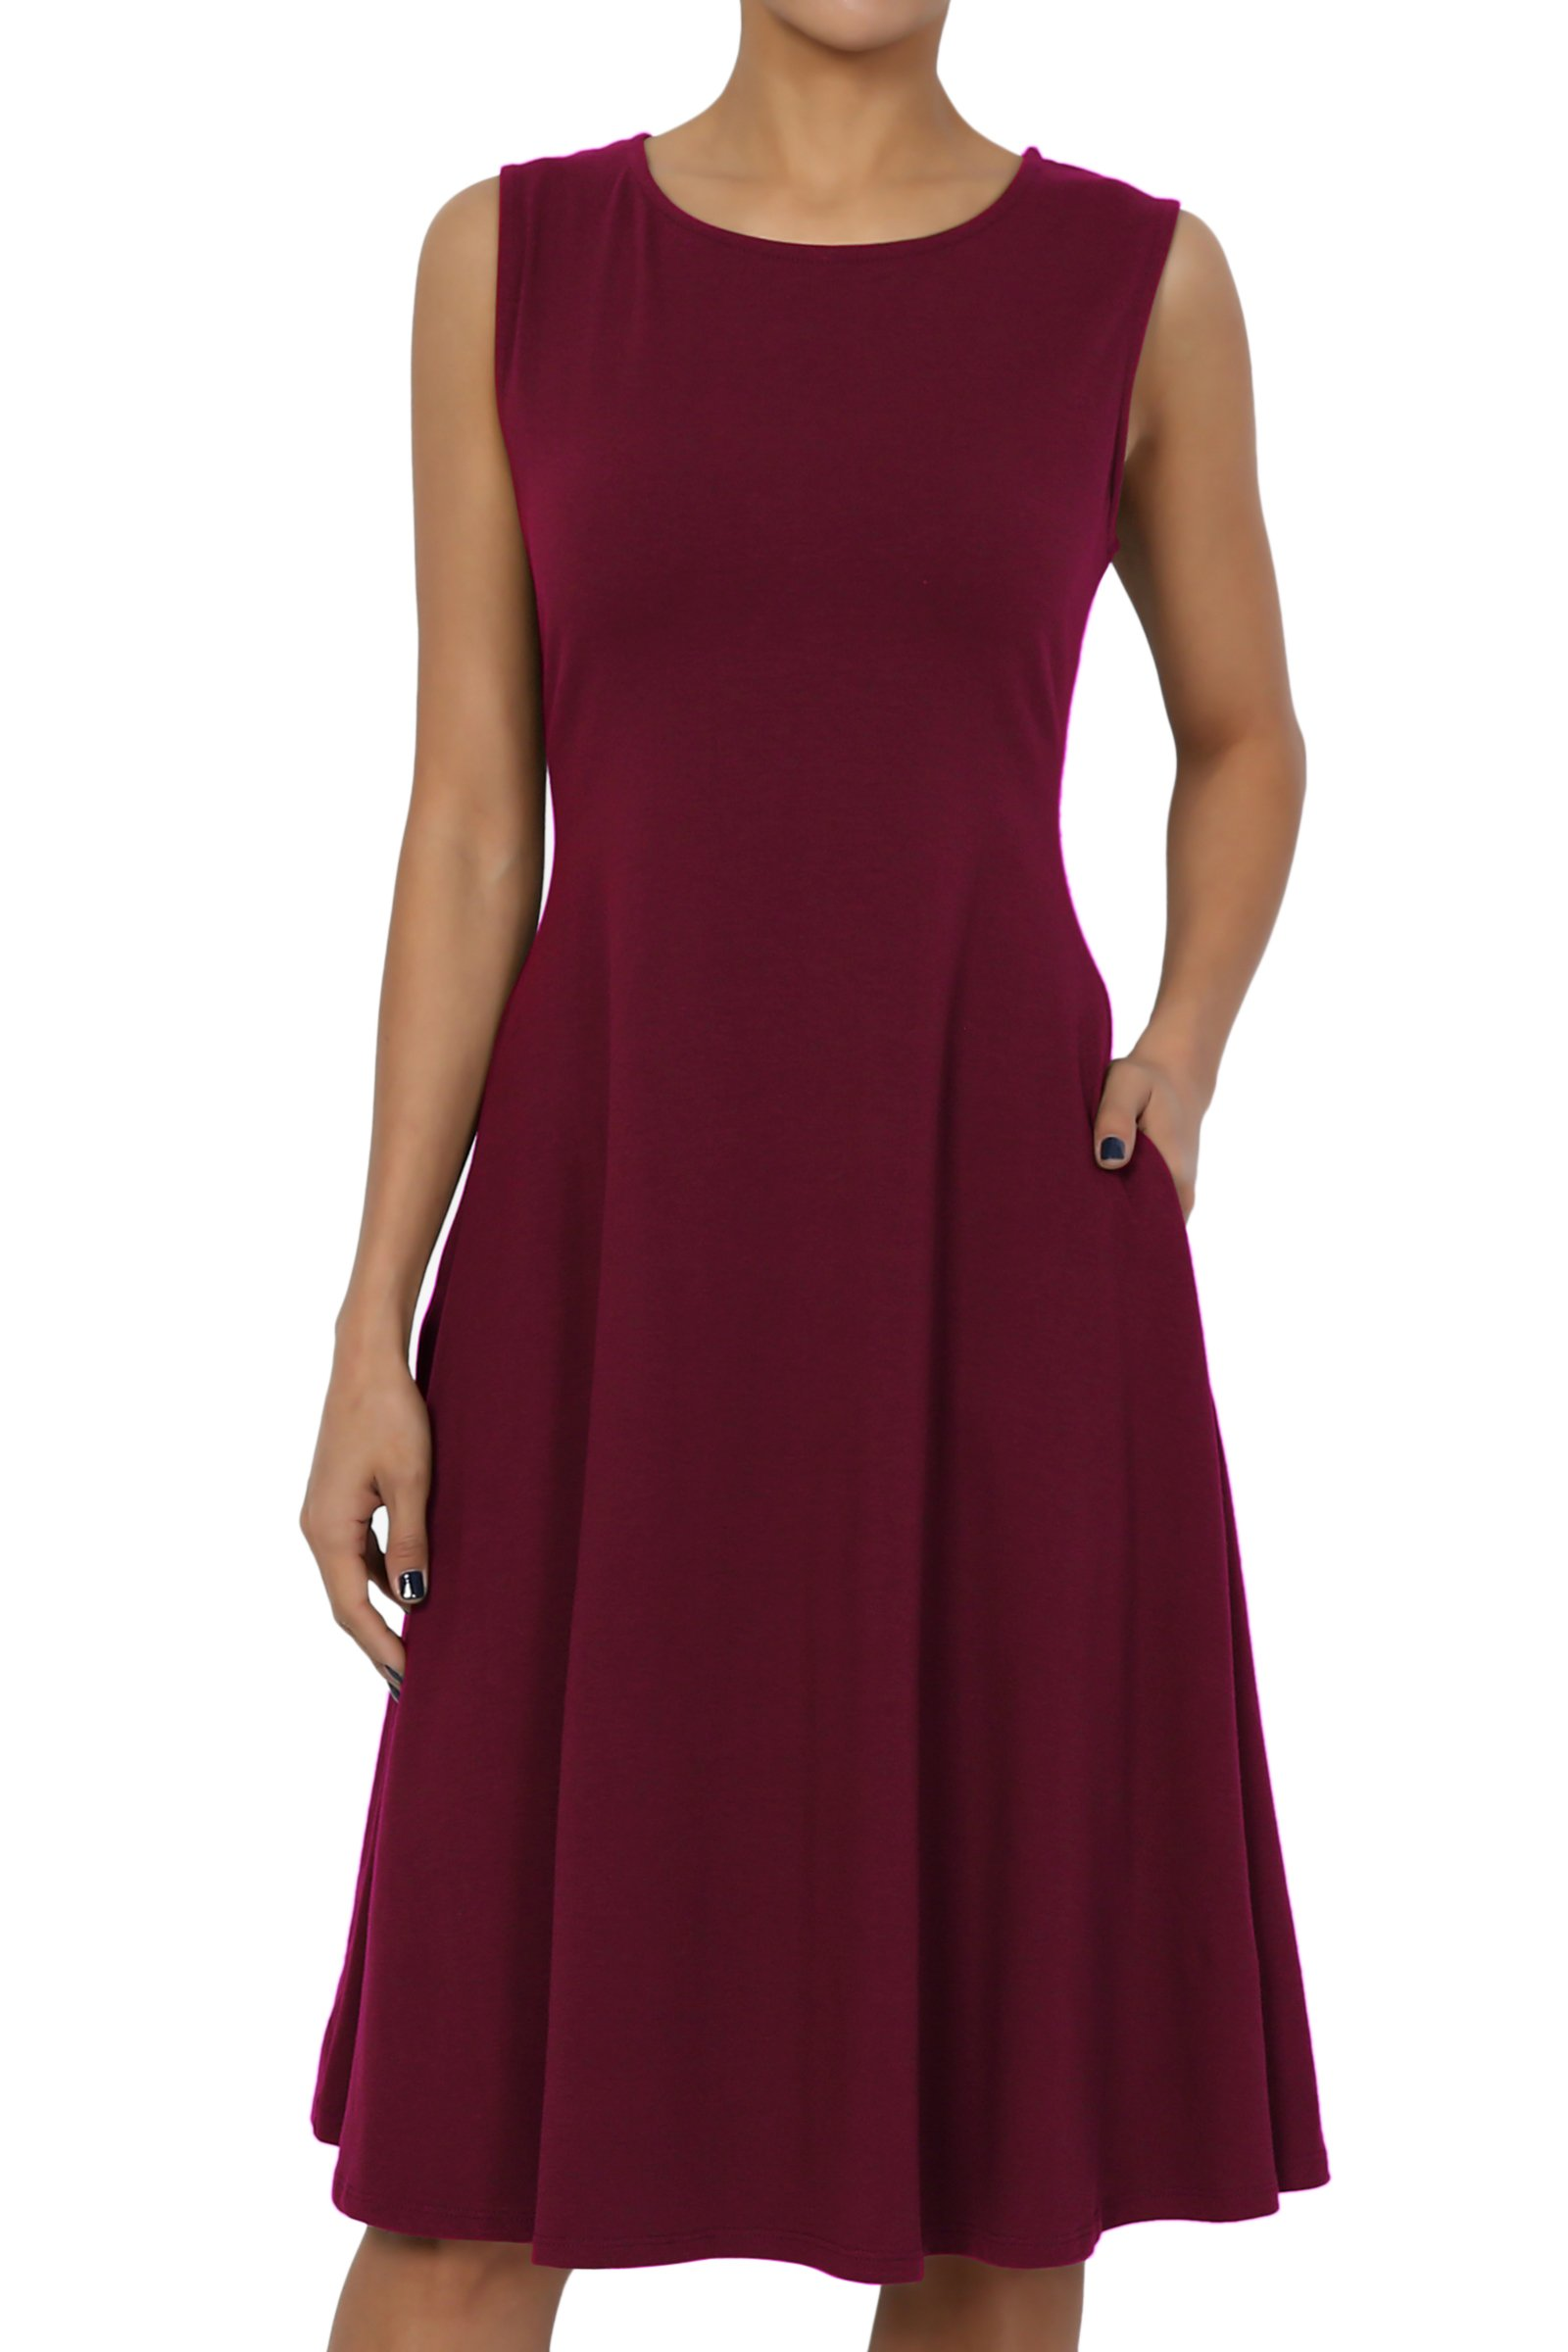 TheMogan Women's Sleeveless Pocket Stretch Cotton Fit & Flare Dress Dark Burgundy 3XL